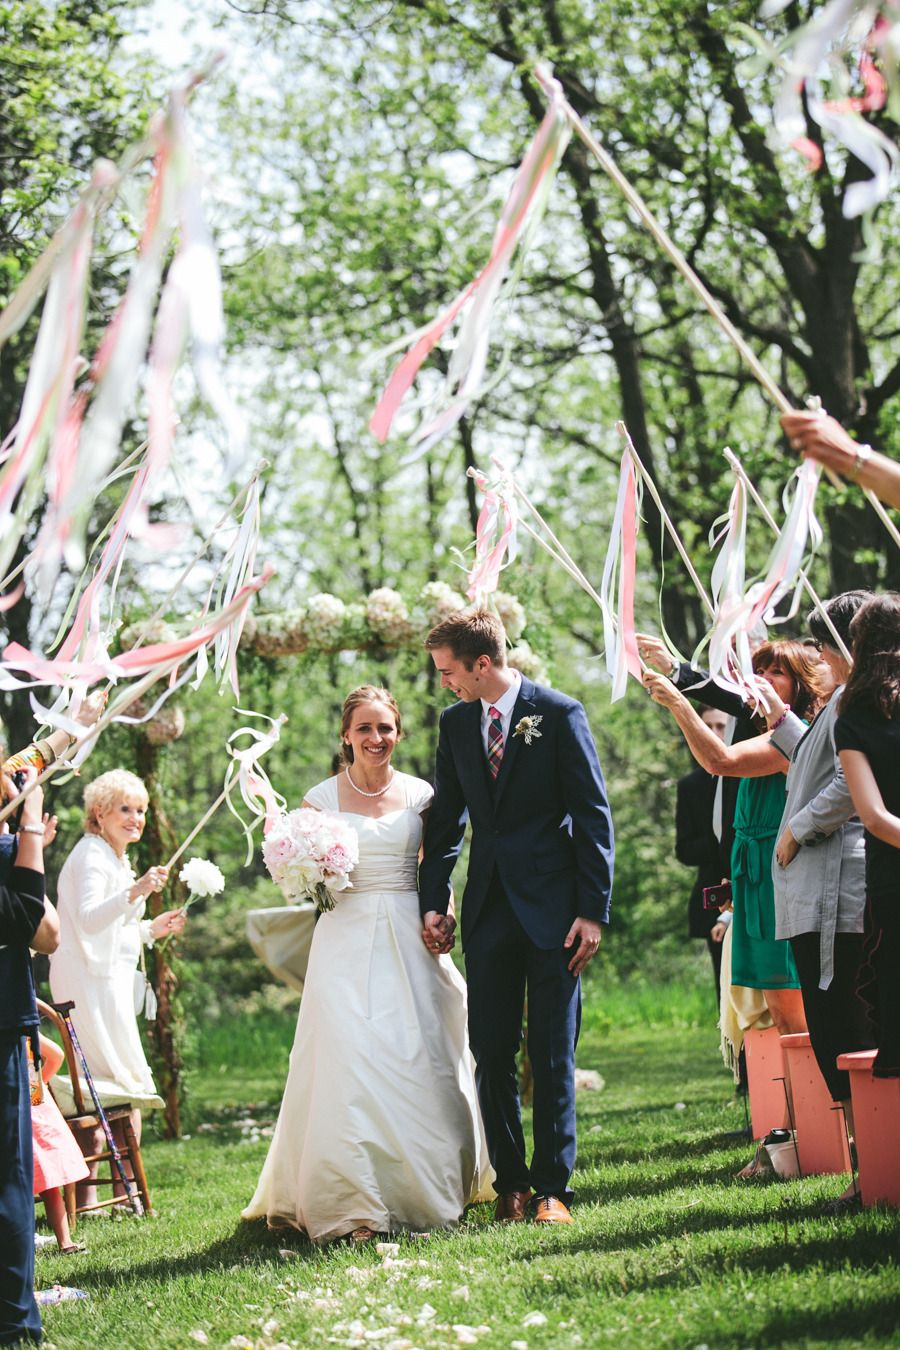 wedding send off ideas streamers happilyeverafter wedding Celebrating after the I Do s Photography by woodnotephotography